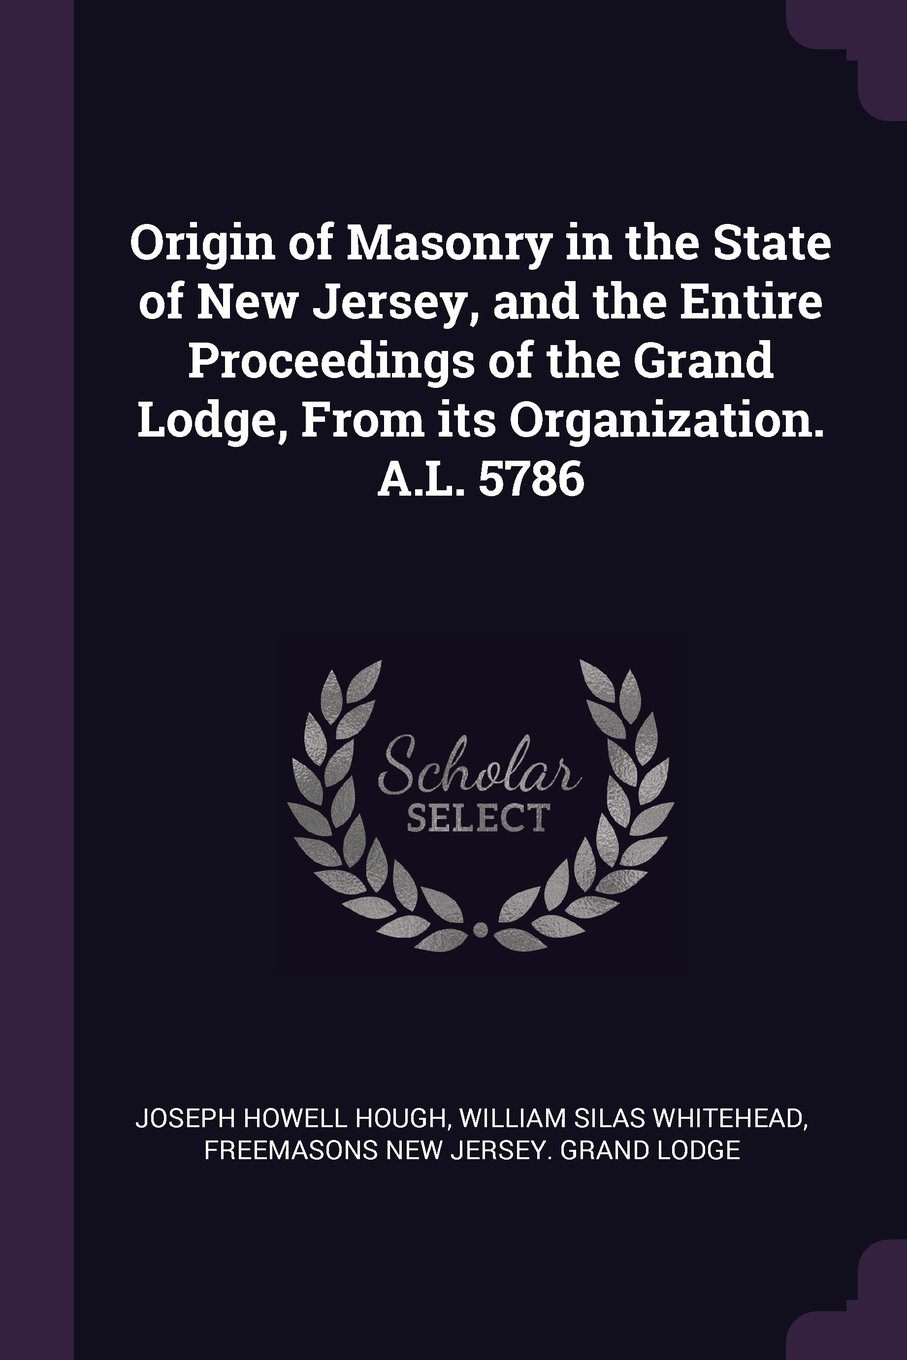 Download Origin of Masonry in the State of New Jersey, and the Entire Proceedings of the Grand Lodge, From its Organization. A.L. 5786 pdf